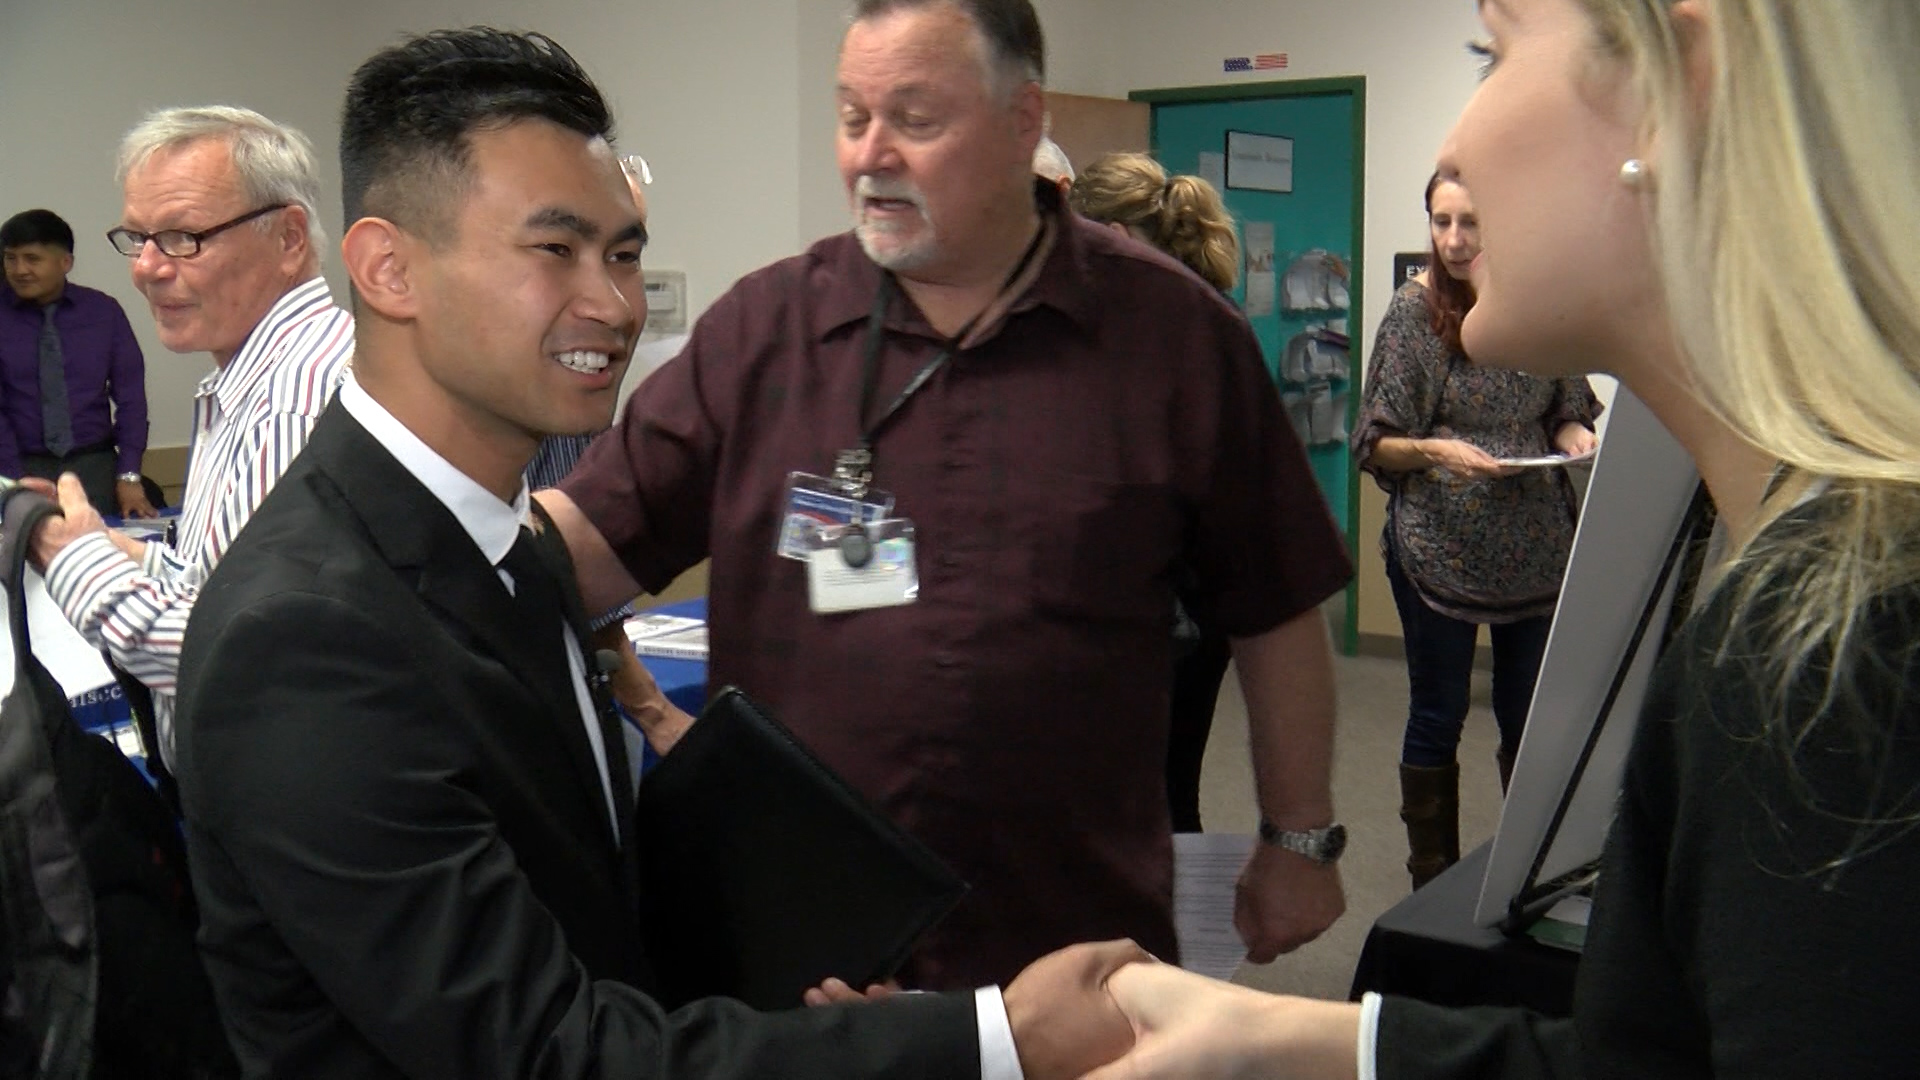 New Vet Takes On Challenge Of Finding Civilian Career At Job Fair